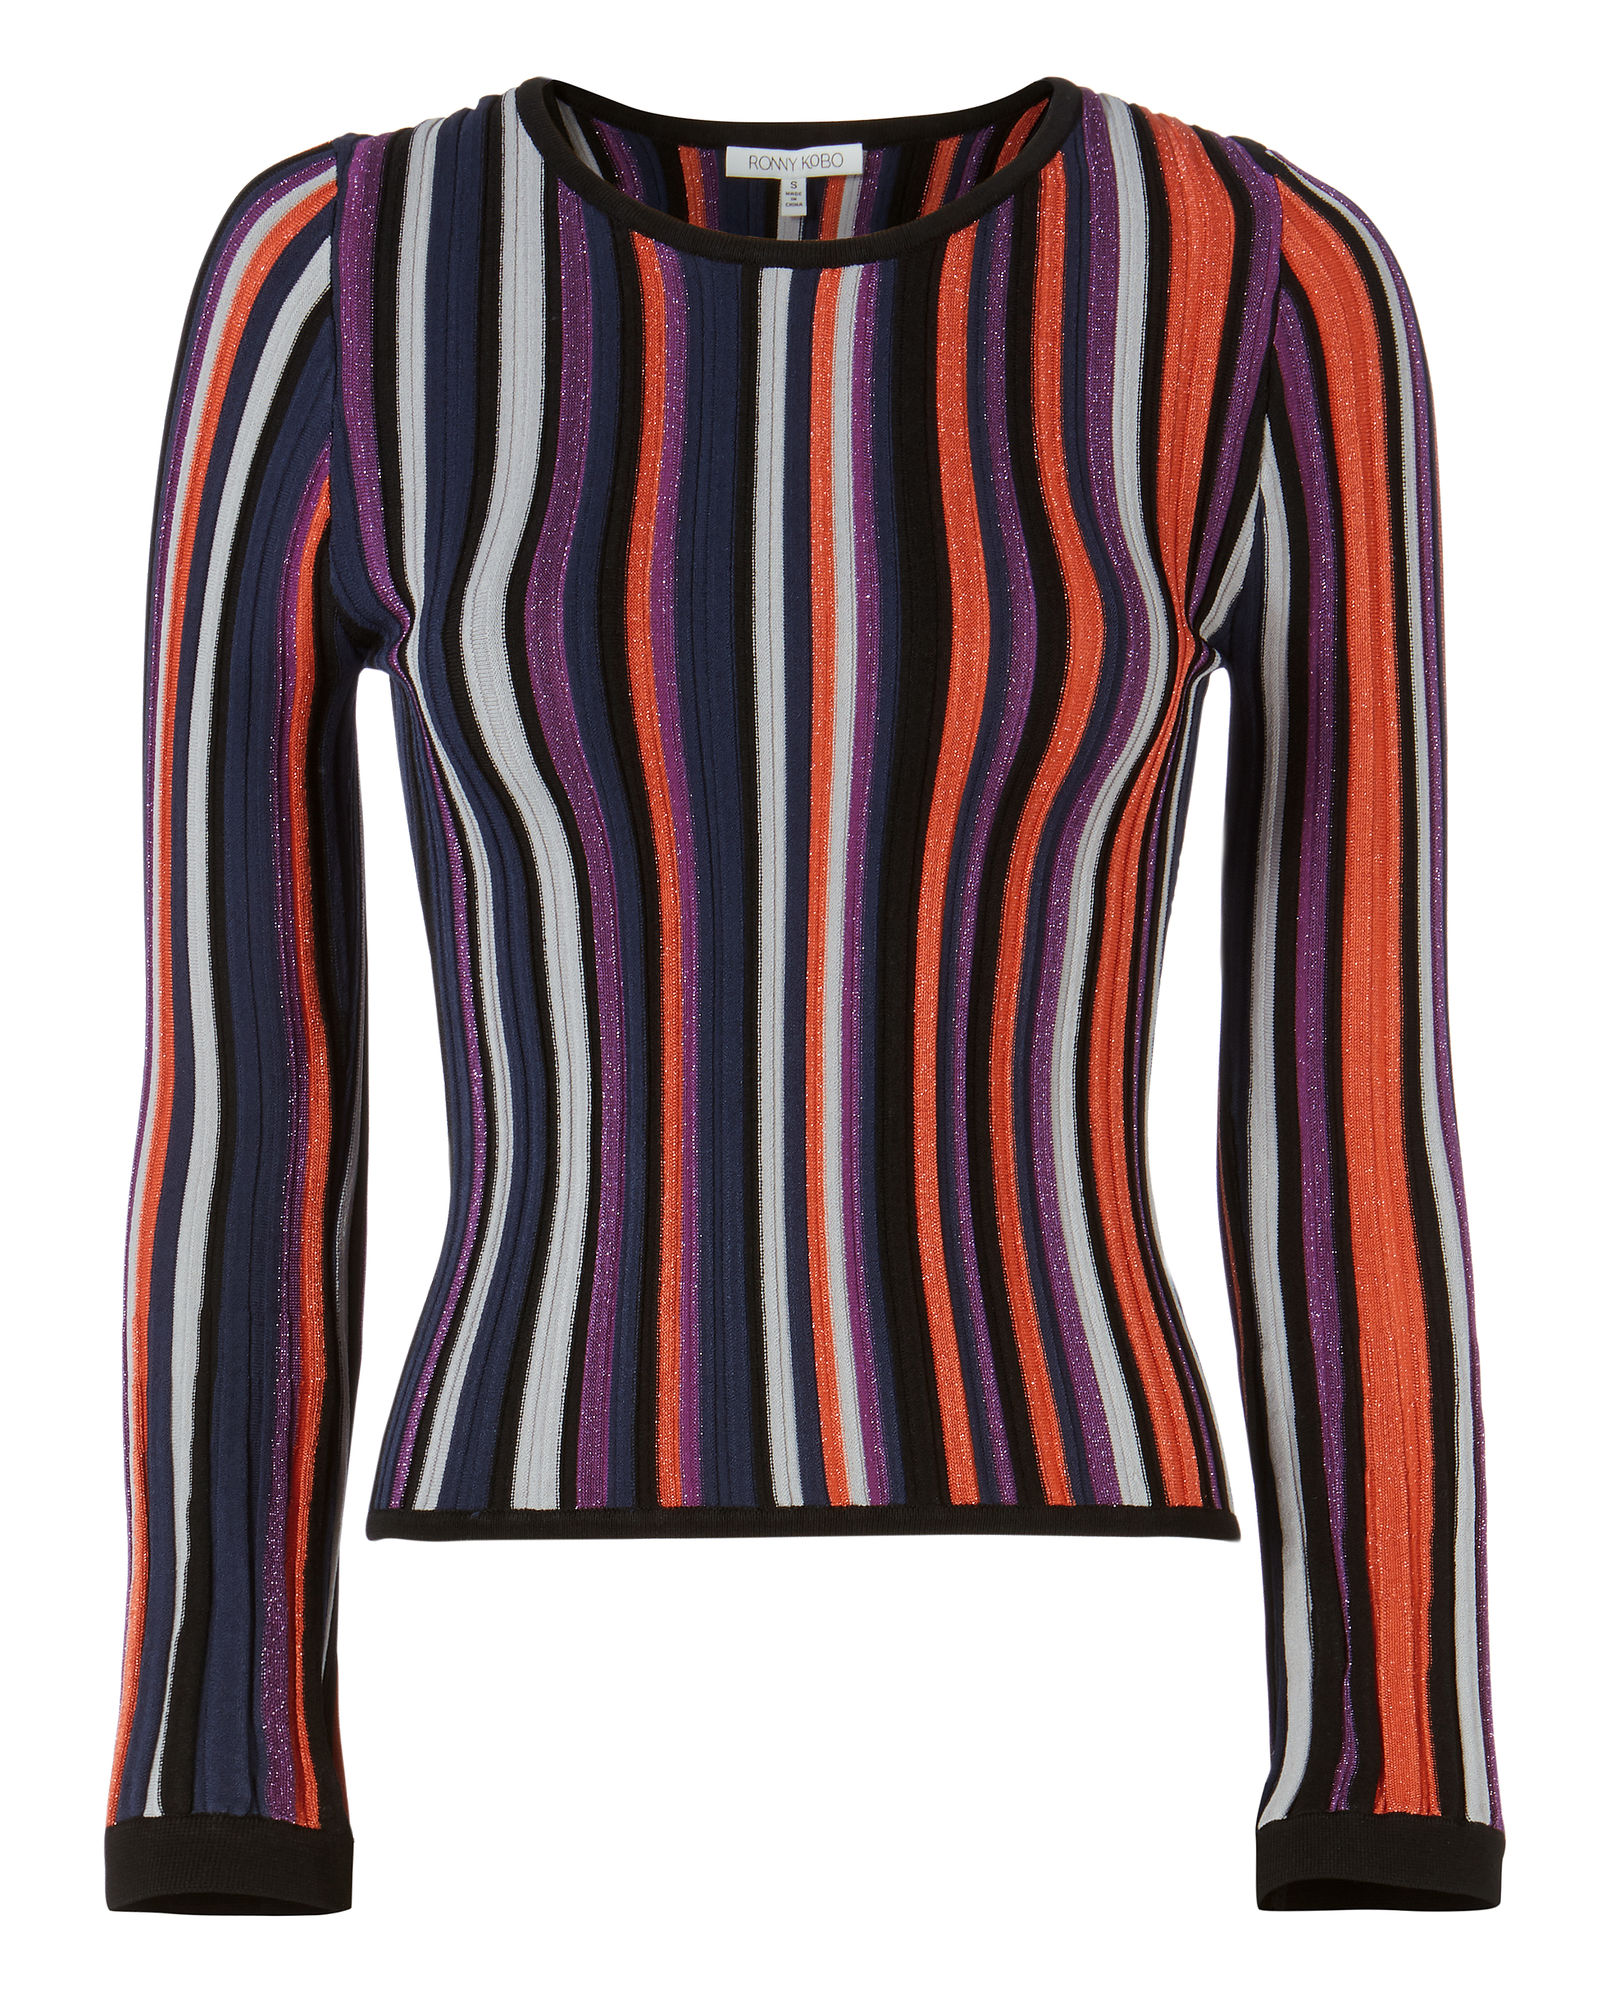 Ronny Kobo - Dafne Striped Top, $348